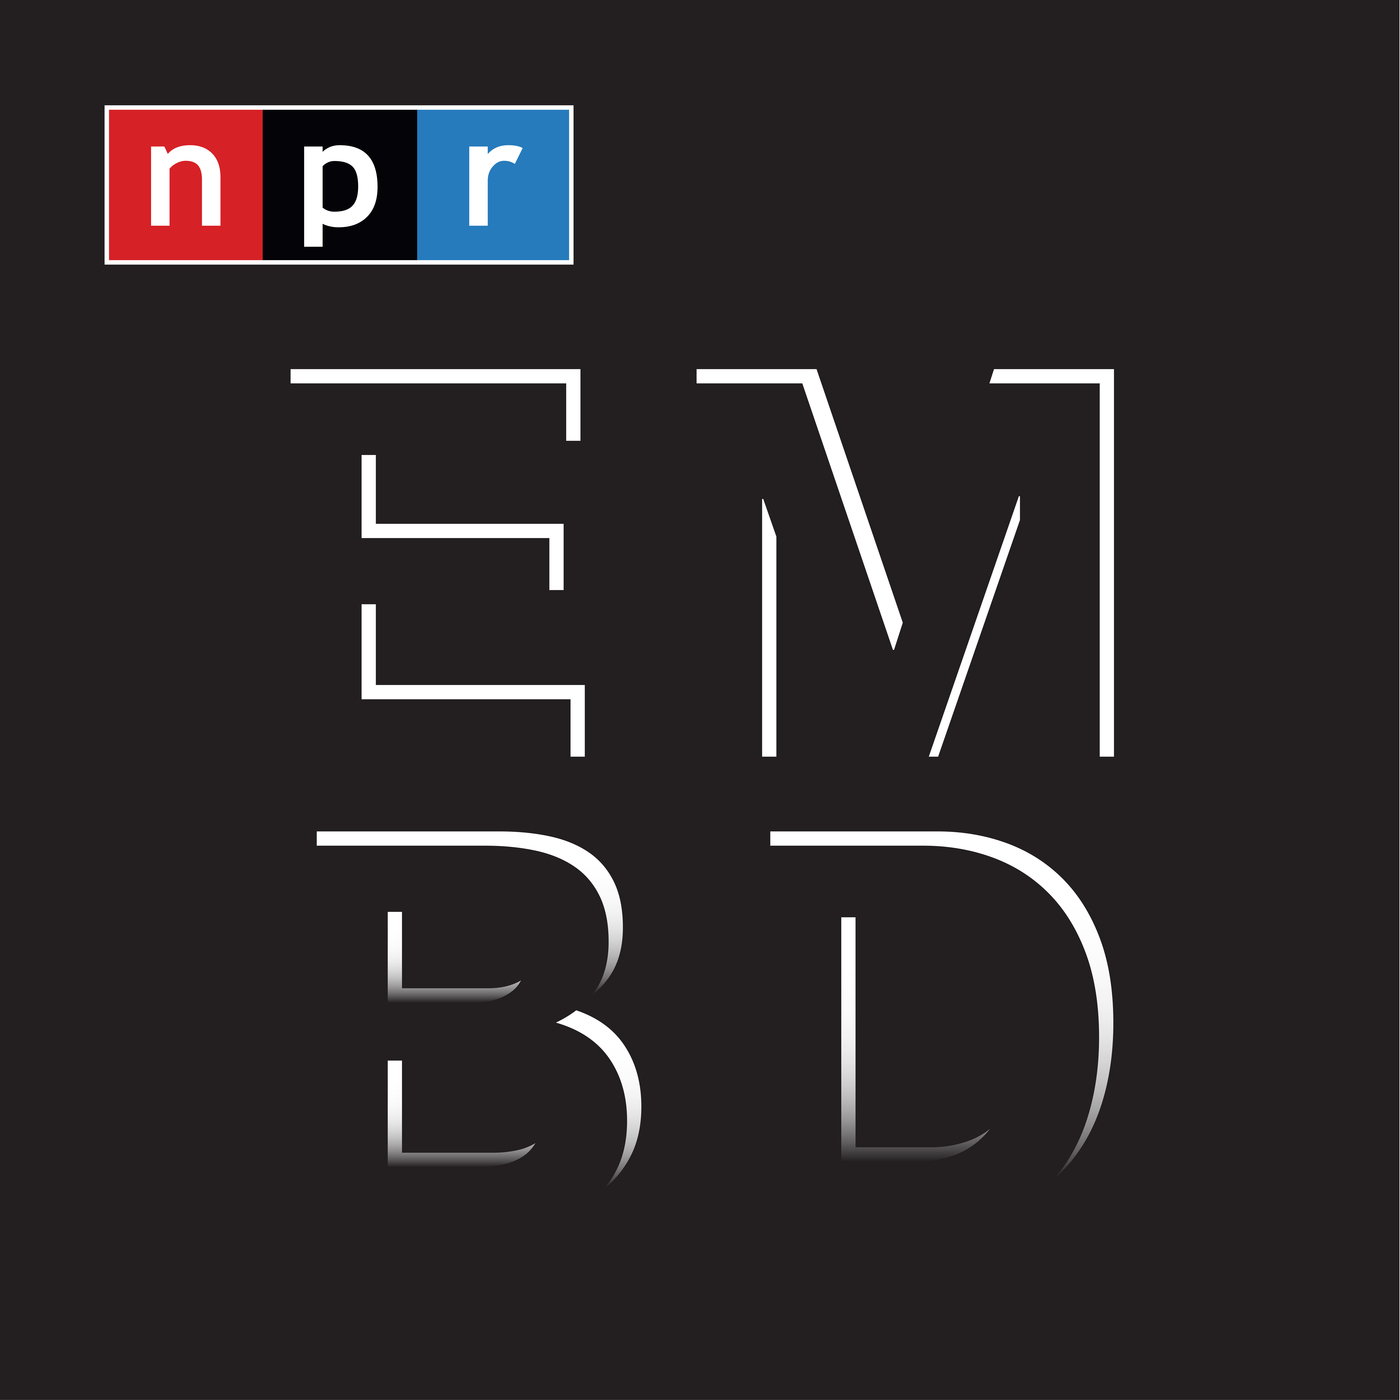 EMBEDDED - What we hear in the news is only a snapshot of the full story. Embedded host Kelly McEvers takes those snapshots and goes in-depth. This NPR podcast tackles topics like digging into the Trump administration's past to stories on police shootings caught on video. Embedded takes you further into the story and makes news digestible.